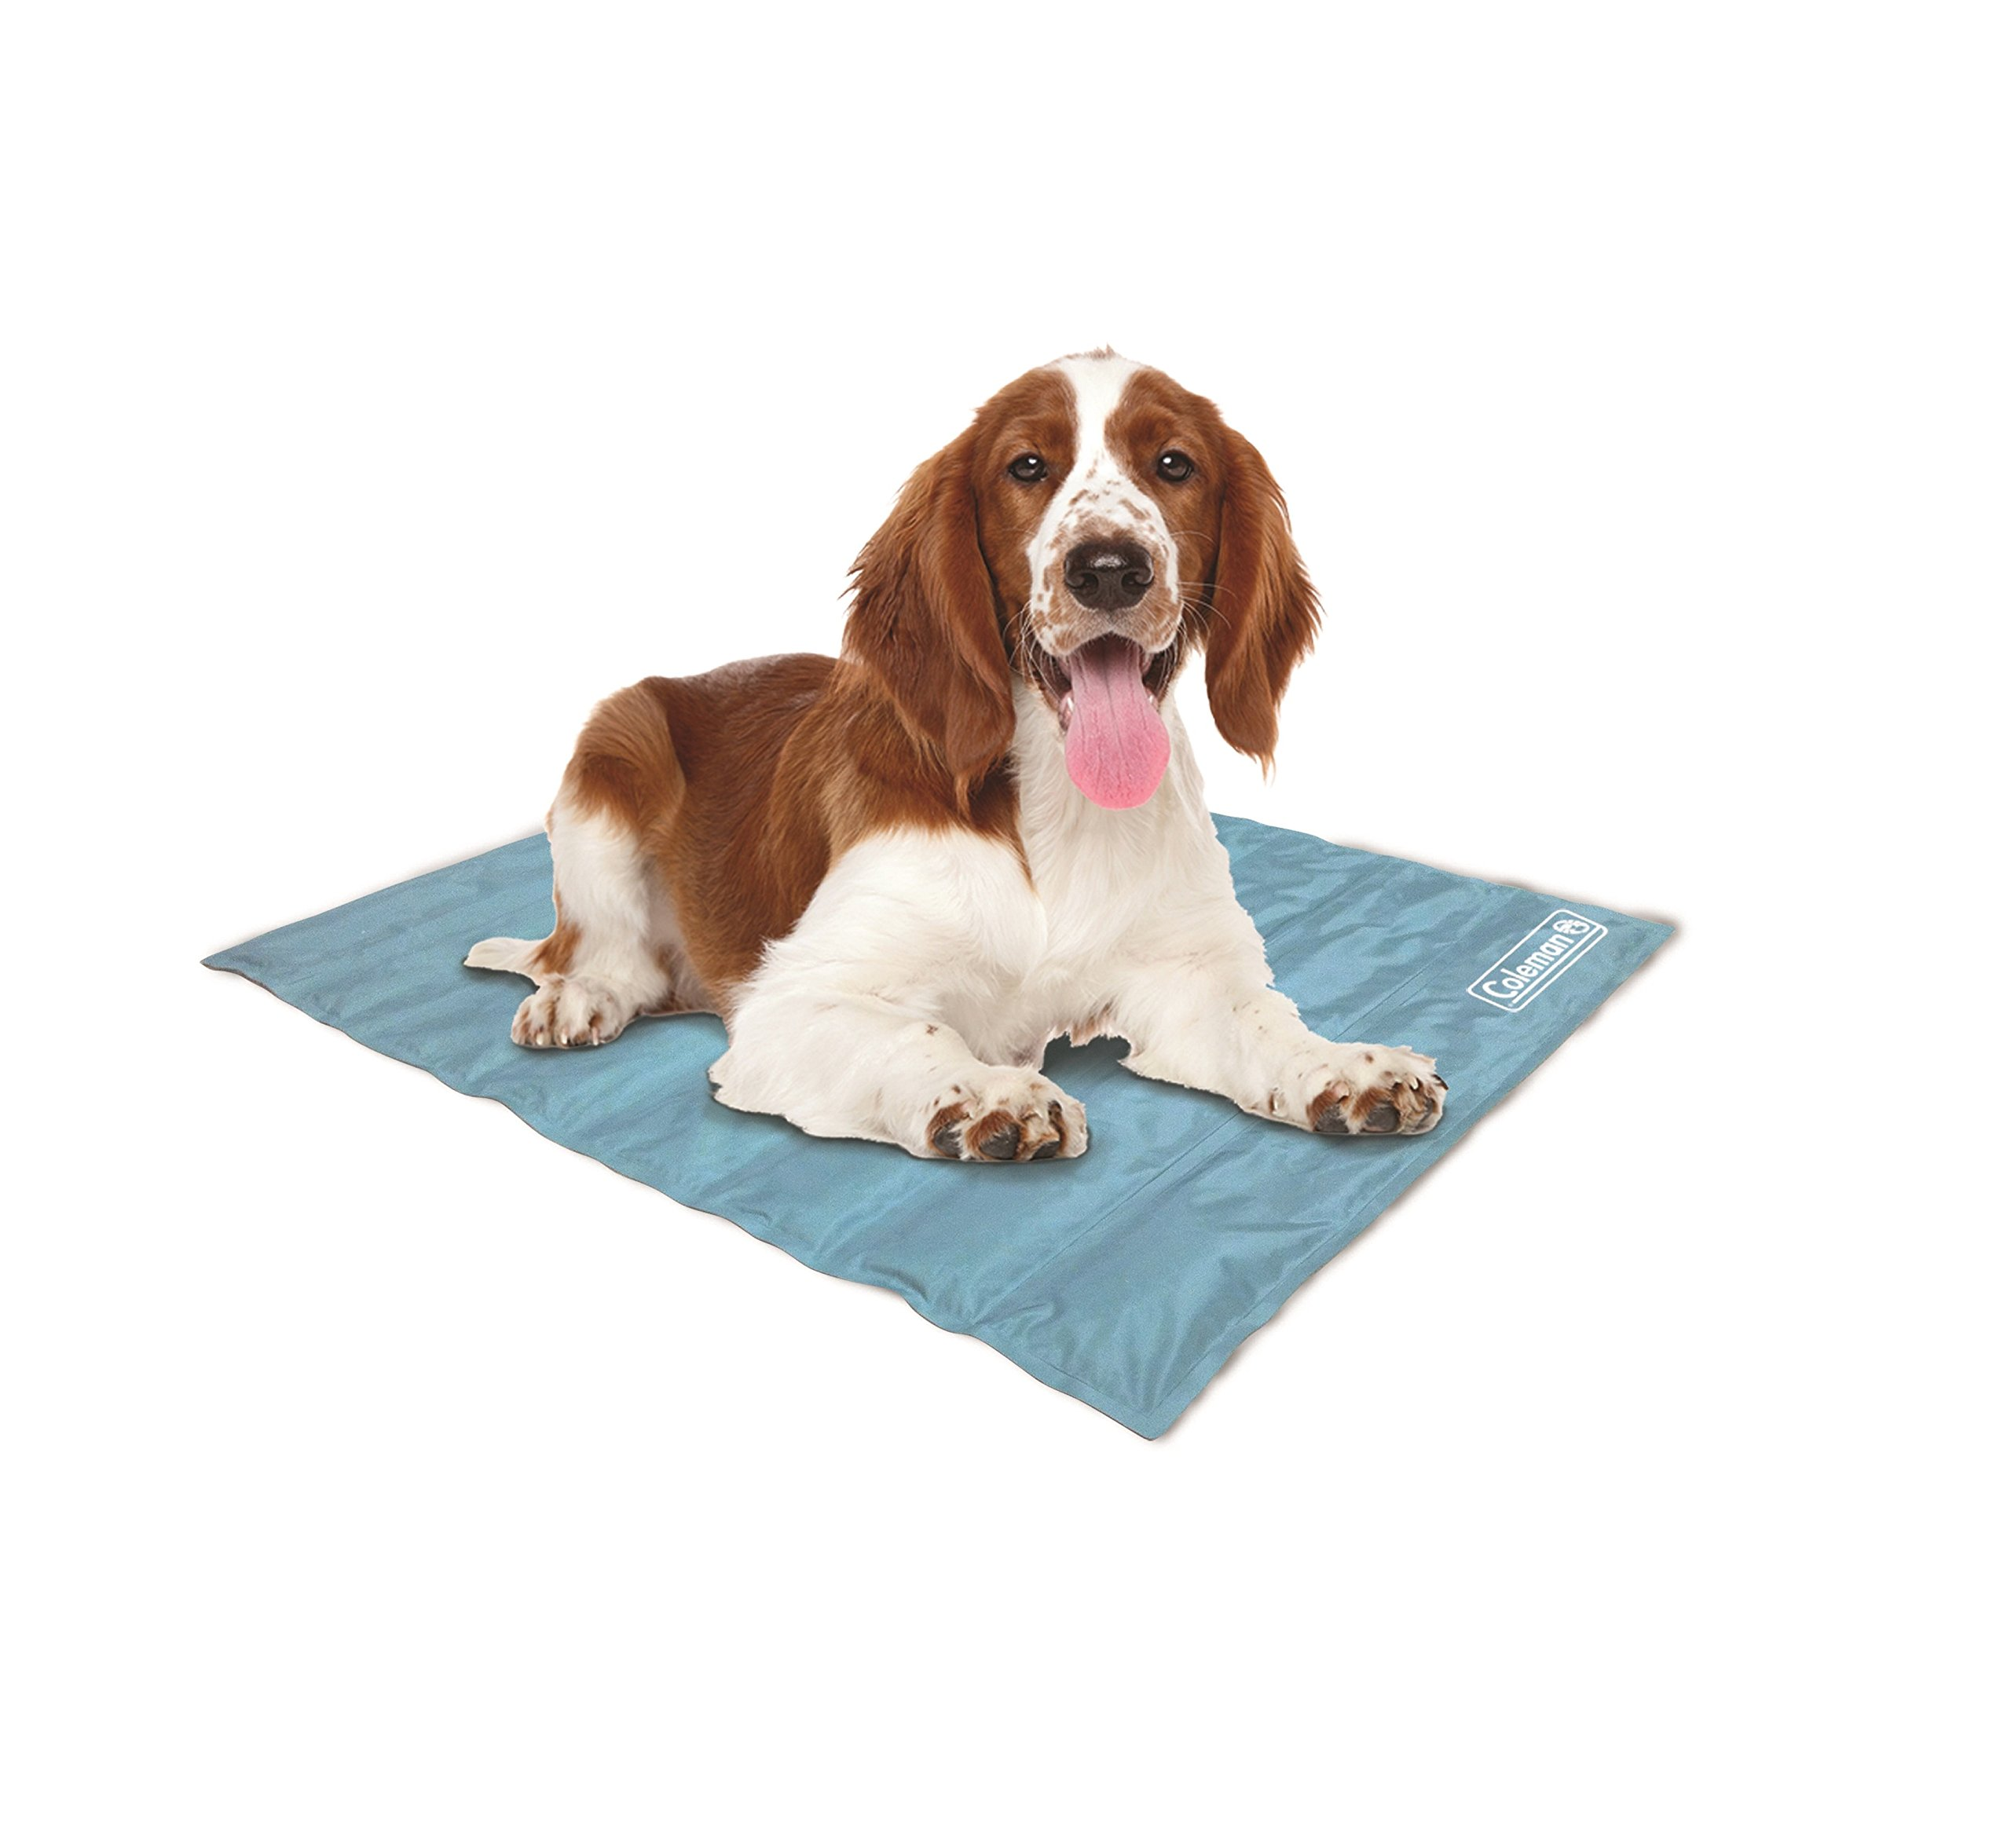 Coleman Pressure Activated Comfort Cooling Gel Pet Pad Mat in Medium 24''x30'', For Medium Pets, Keep your pet cool, and reduce joint pain. Year Round Use 100% safe non-toxic materials